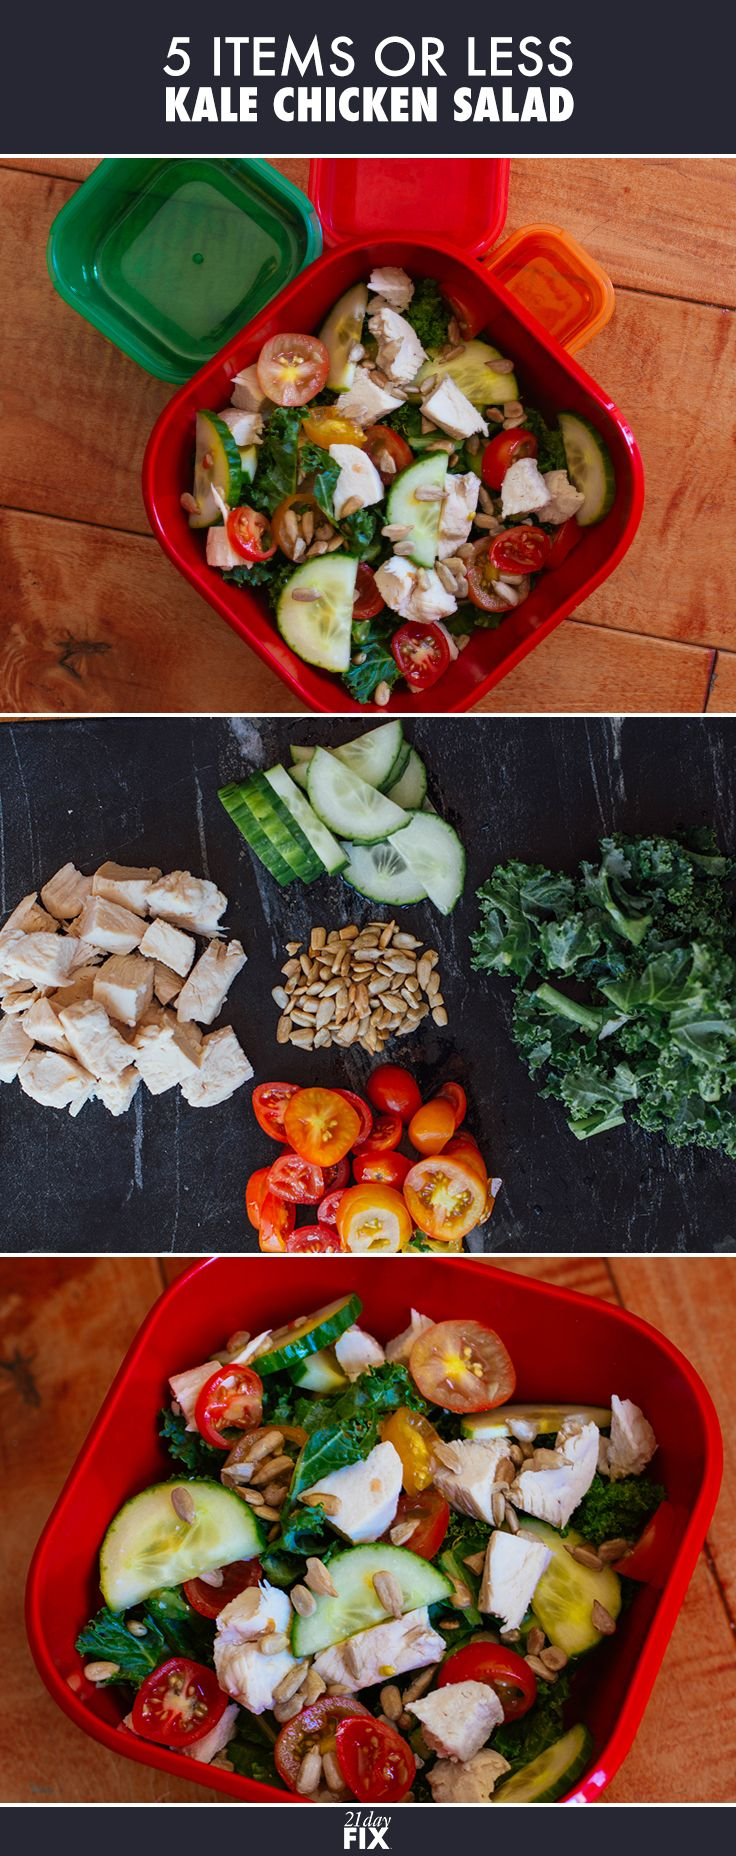 Not only is this salad delicious & easy to make, it's also packed with Vitamin A, Vitamin C, and Protein! Sounds like a ‪#‎21DayFix‬ Win to us.  Ingredients:  1 cup chopped fresh kale ¼ cup chopped tomato ¼ cup sliced cucumber 4 oz. cooked chicken breast, boneless, skinless, sliced 1 Tbsp. raw sunflower seeds  // Recipe // 21 Day Fix // Salad // Eat Clean // Fit Food // Fitness // Healthy Eating // Clean Eating // Recipes //